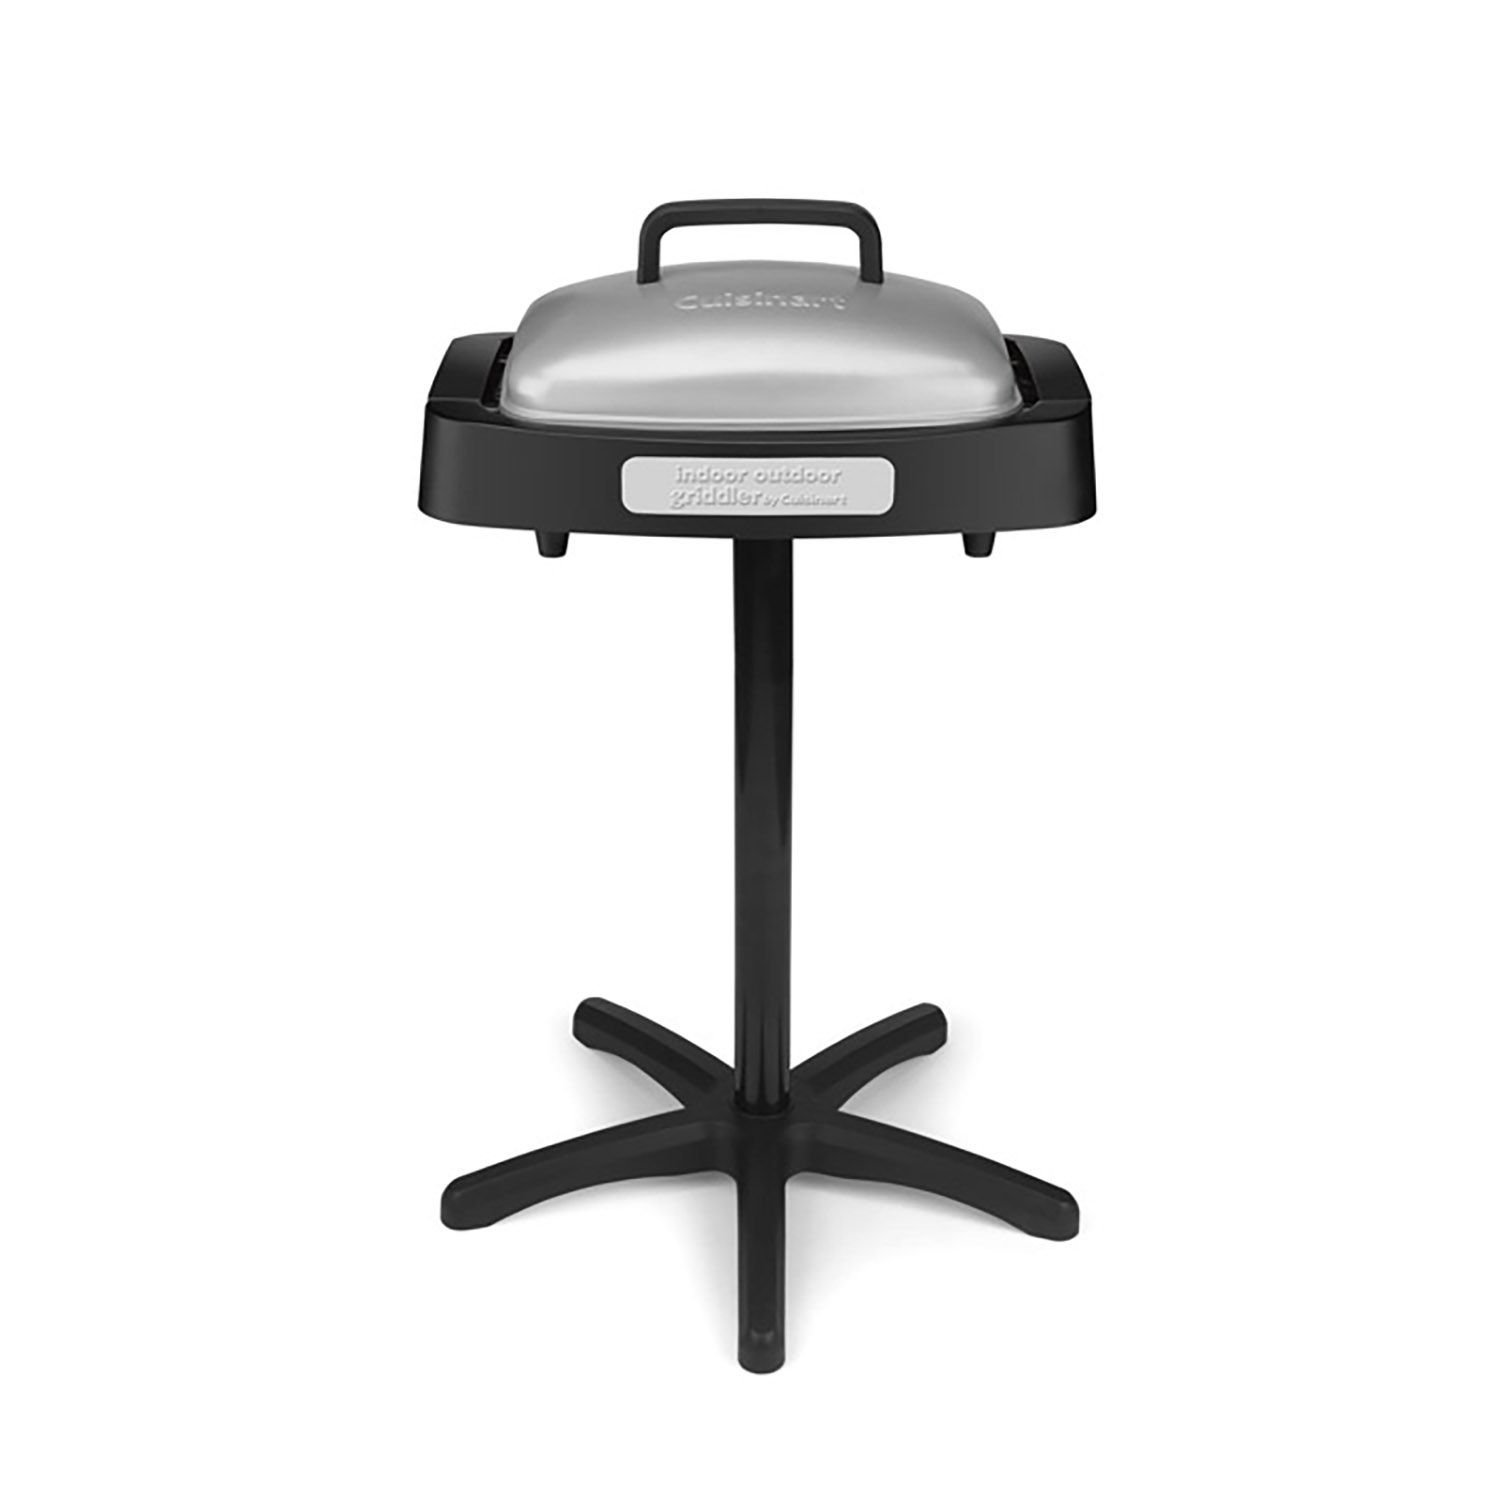 Amazon.com: Cuisinart Grid-180SAL Indoor/Outdoor Grill, Black ...